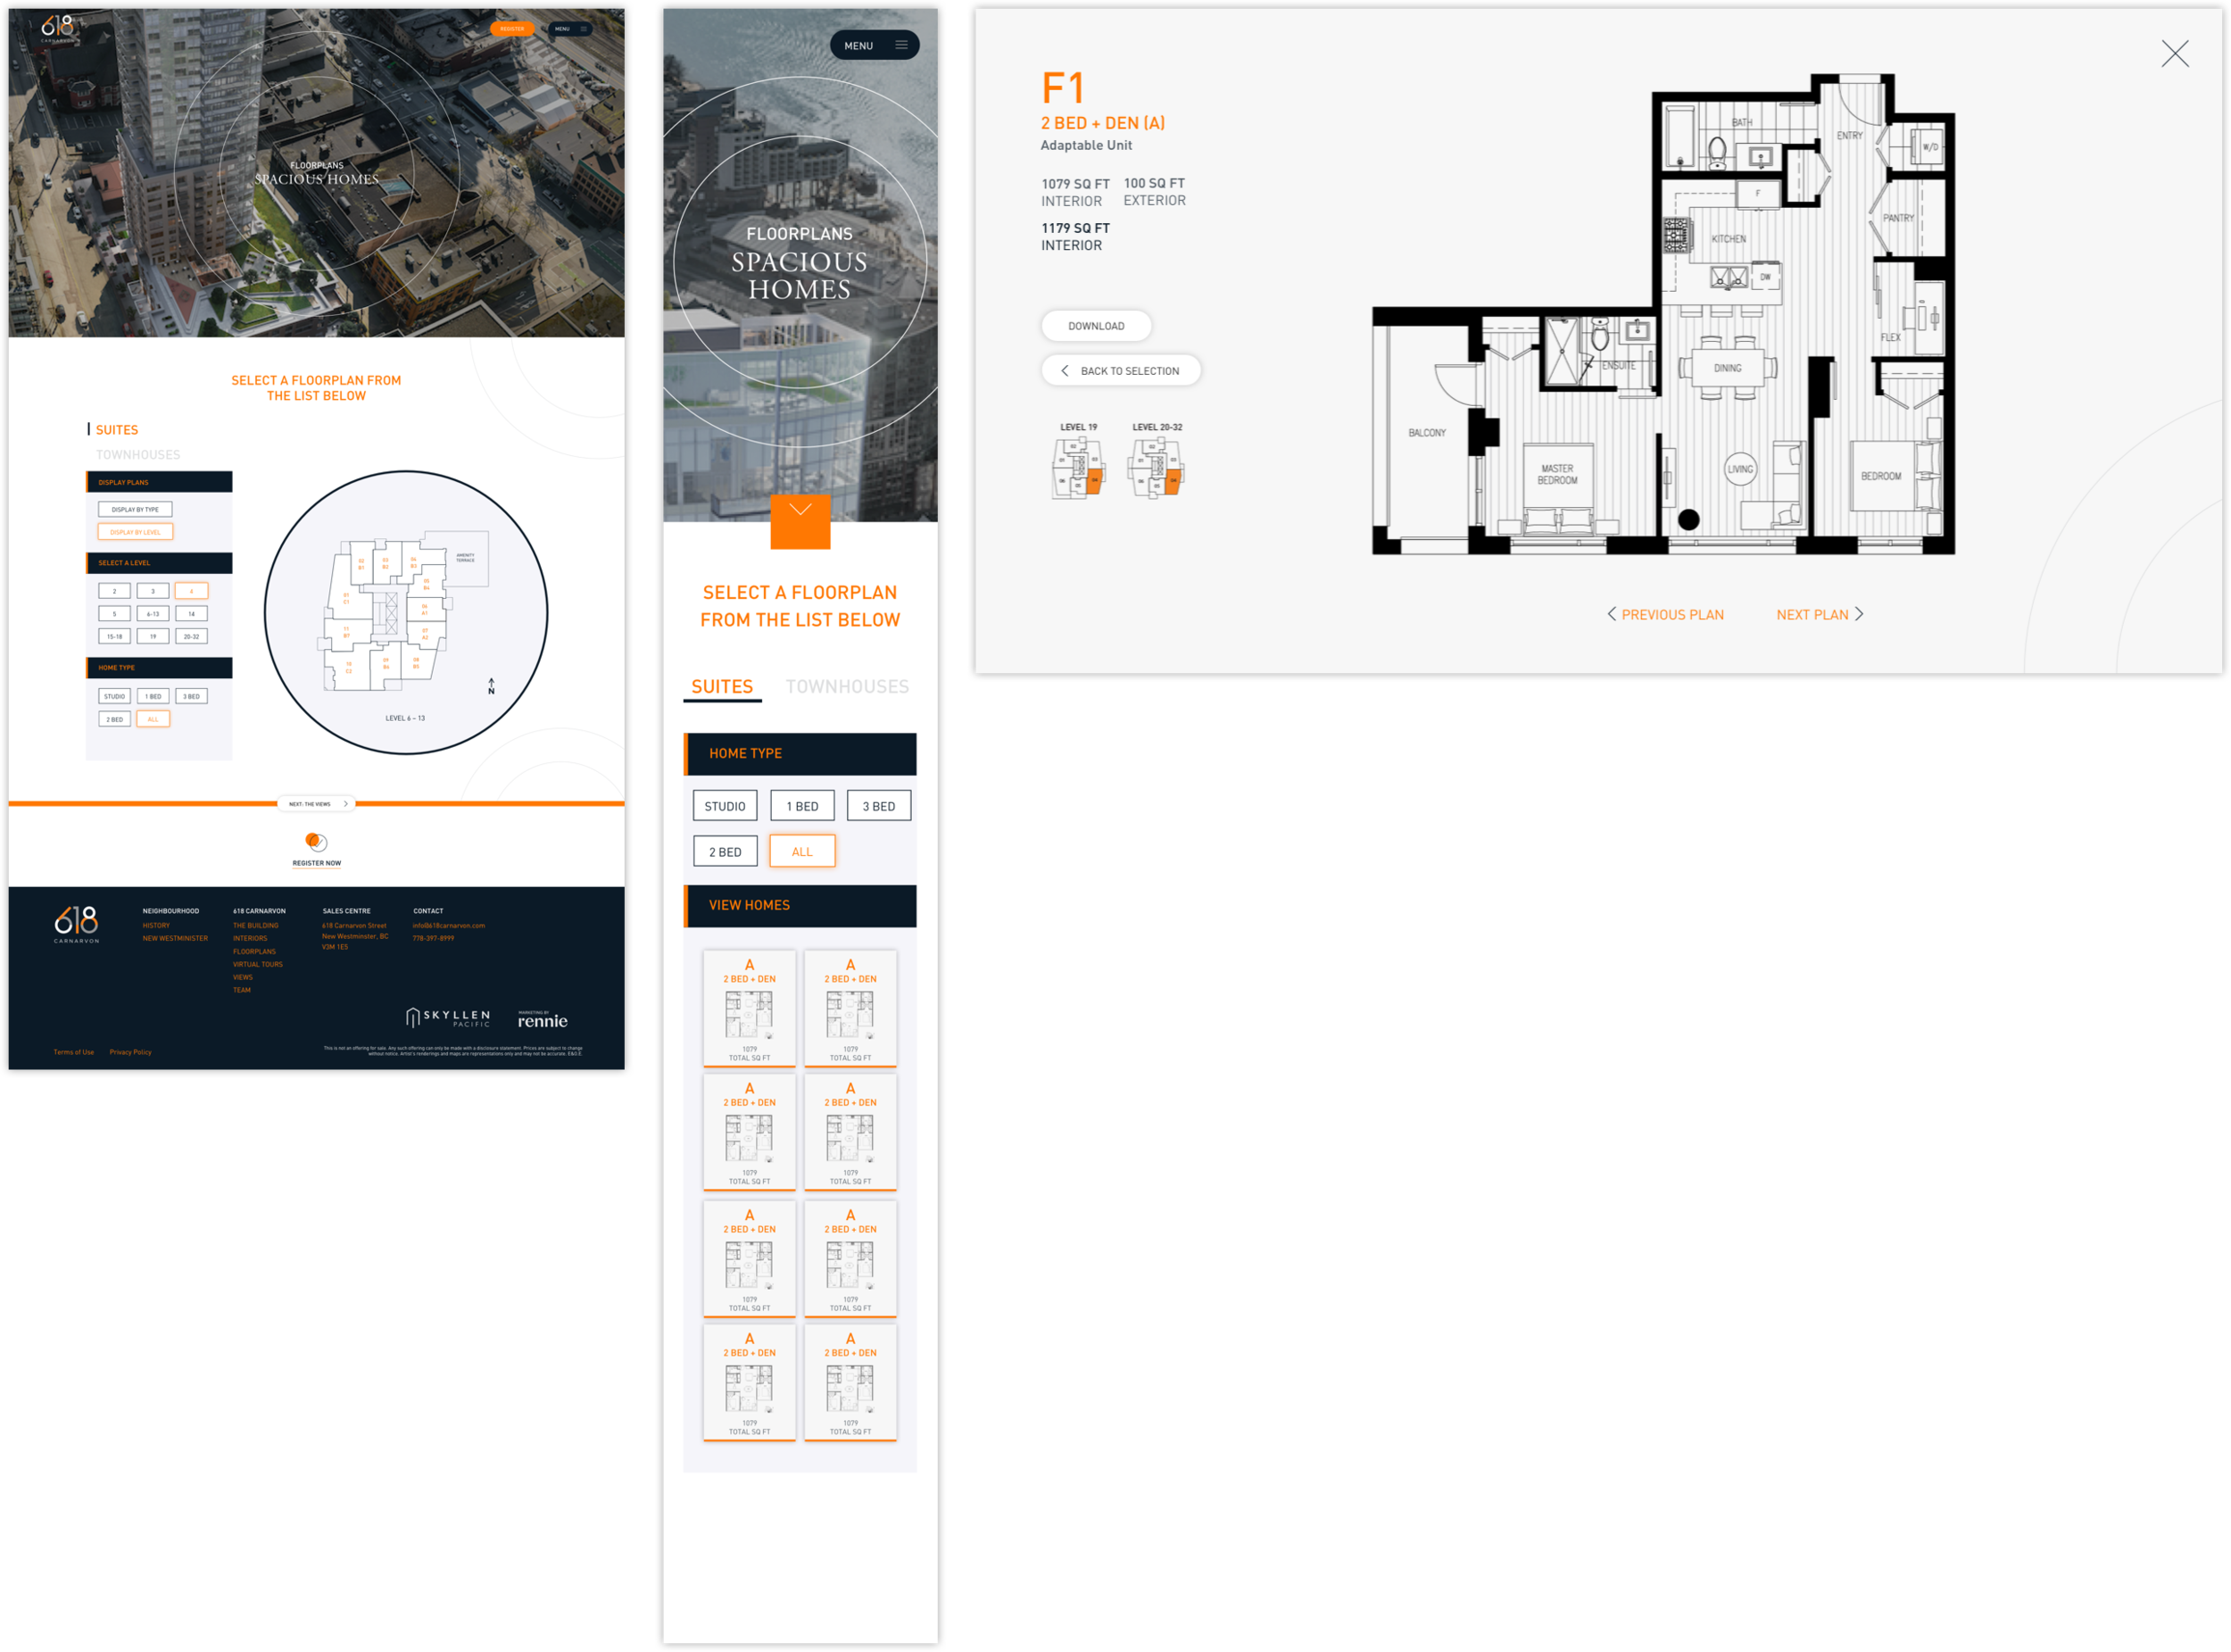 Lots of small improvements led to a better holistic experience for users trying to find a home: Plan thumbnails, consistent filters, contextual plates and in-line browsing.